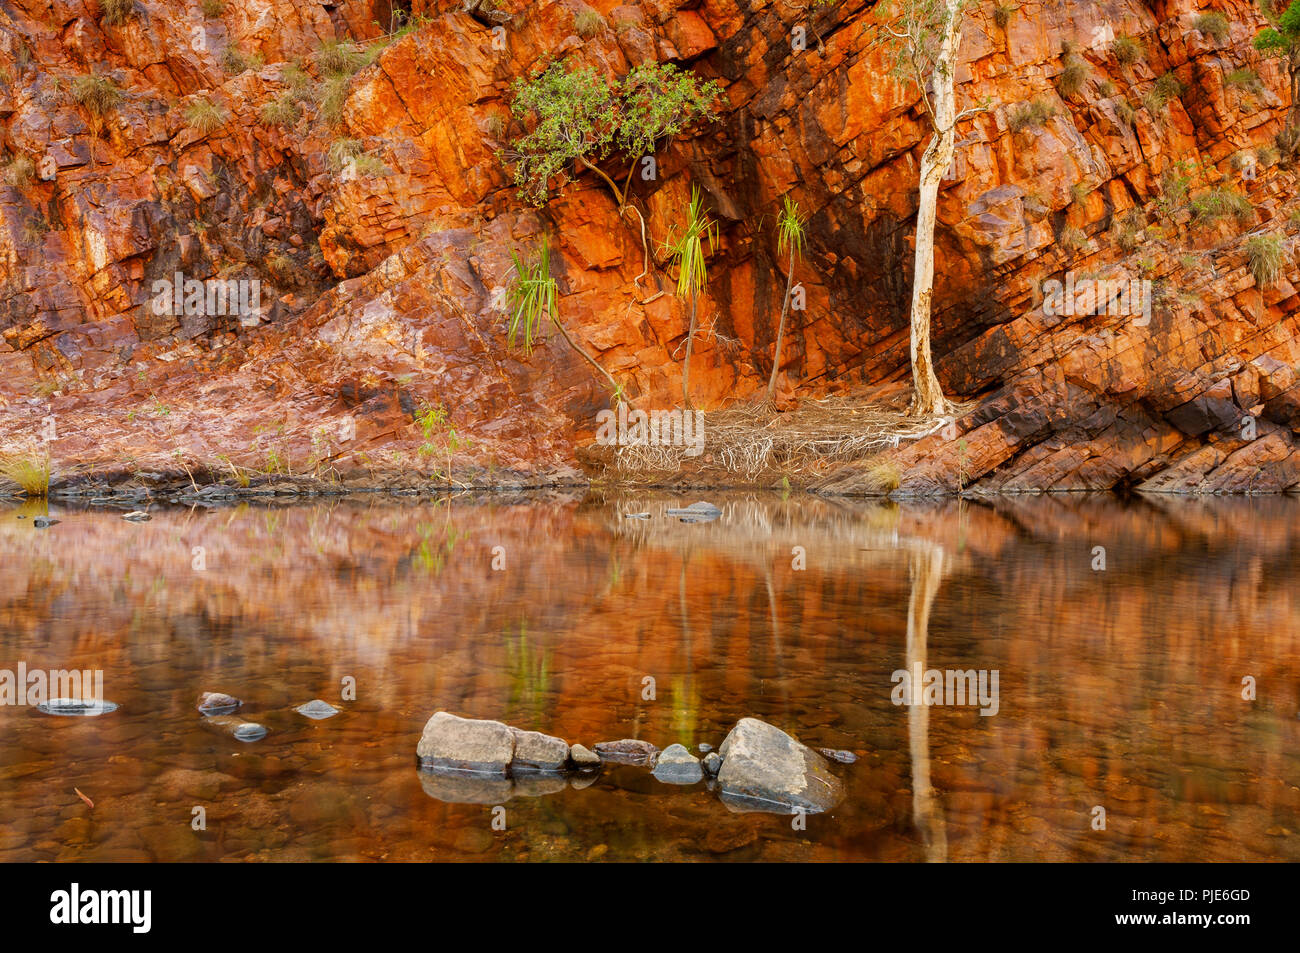 Reflections in Moonshine Gorge at El Questro Station. - Stock Image